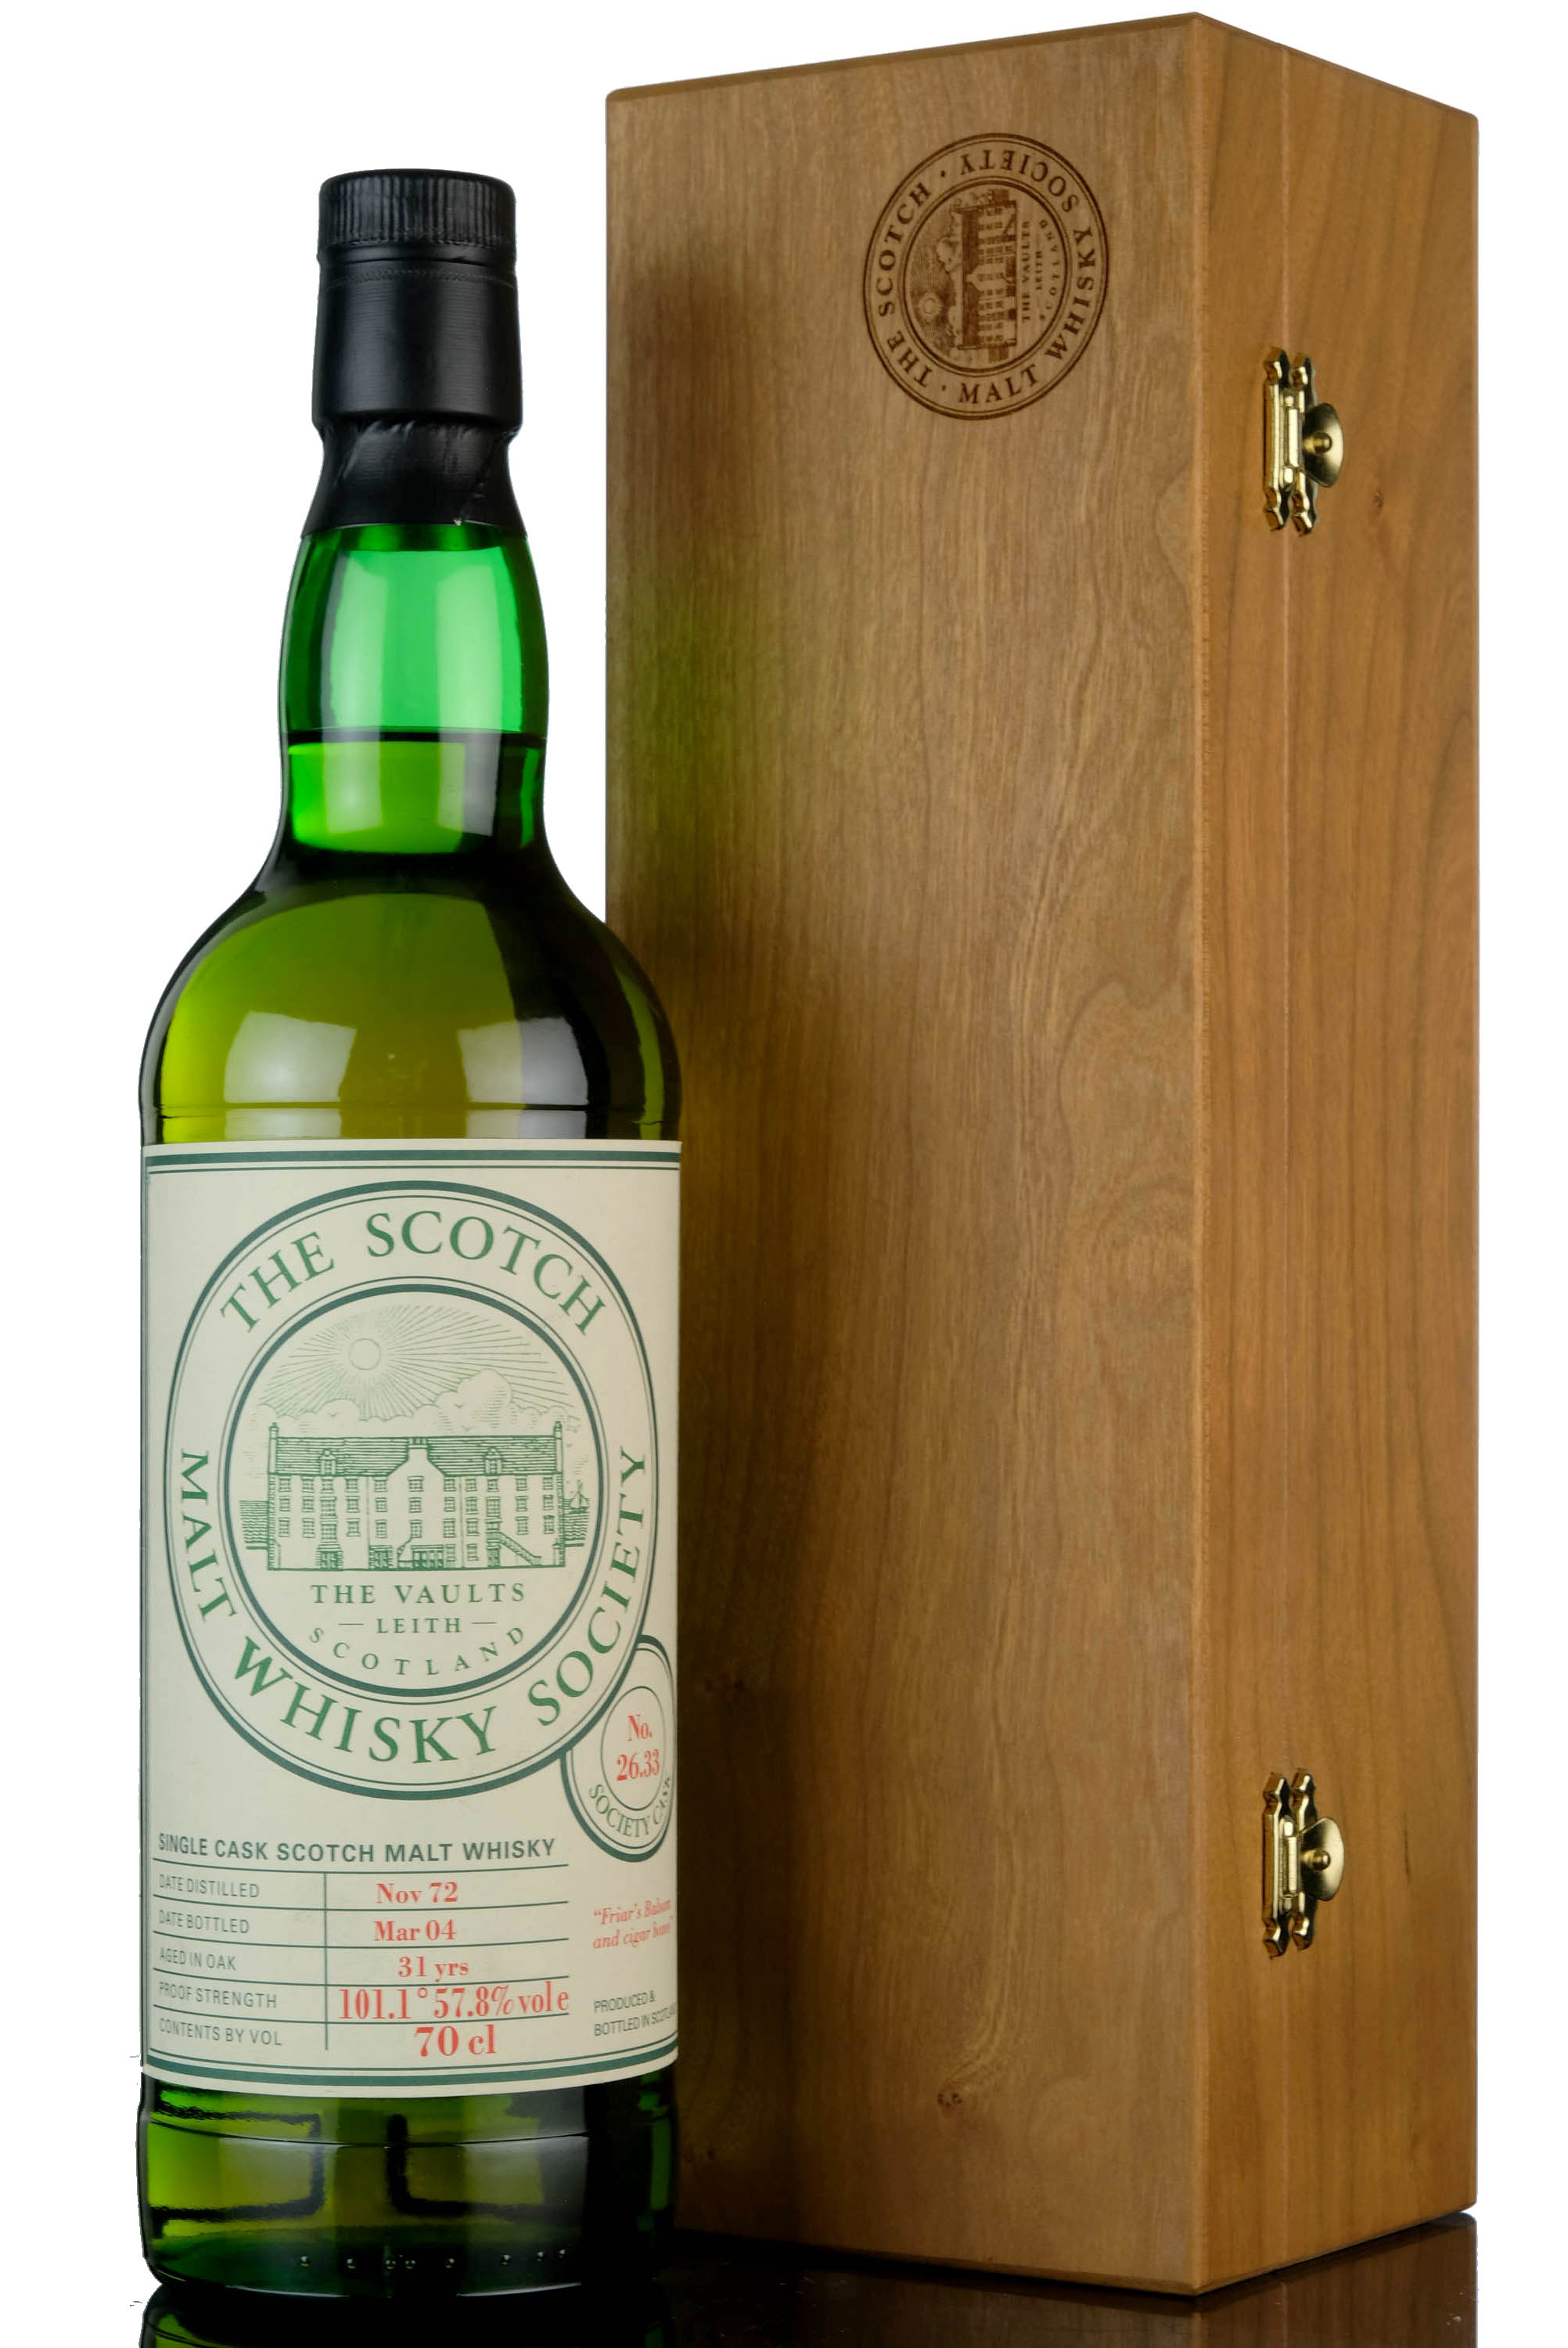 clynelish 1972-2004 - 31 year old - smws 26.33